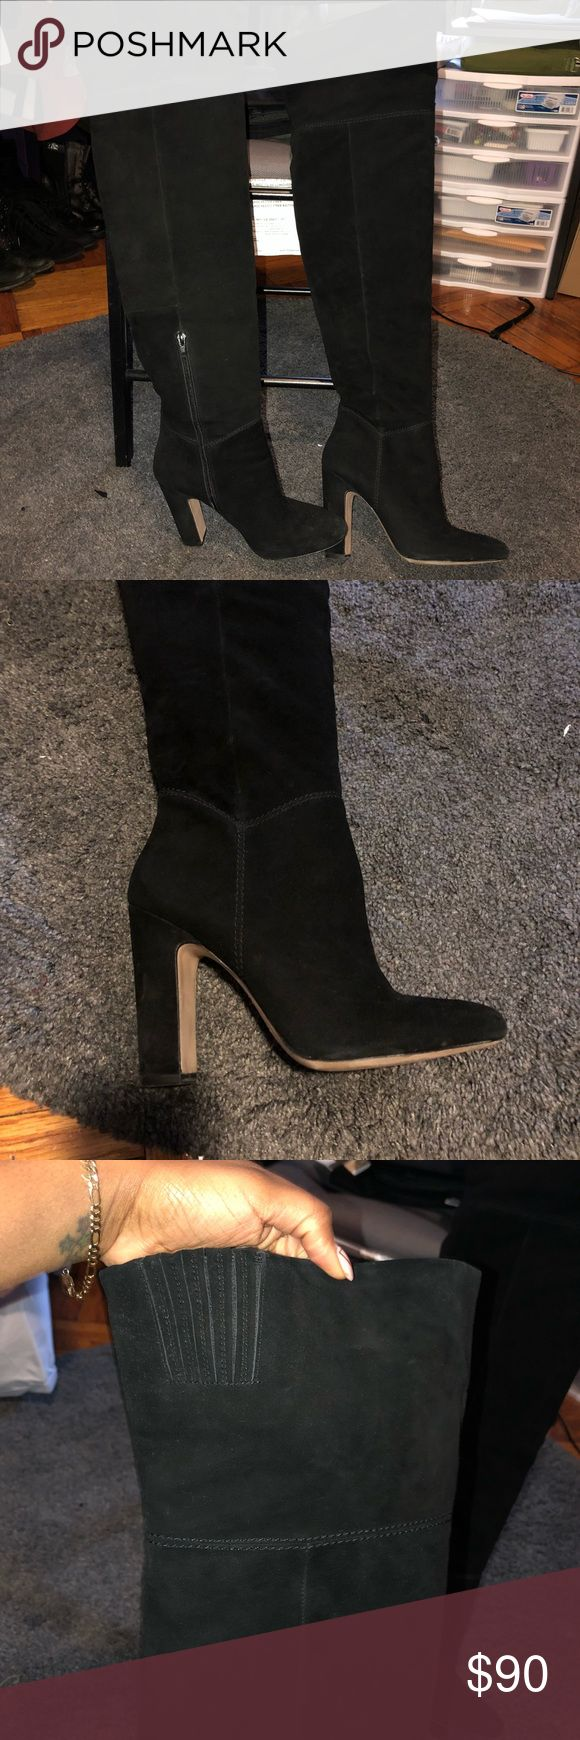 Aldo Black Suede Thigh High Boots Worn only once to dinner. Thigh high with about a 4 inch heel. Aldo Shoes Heeled Boots